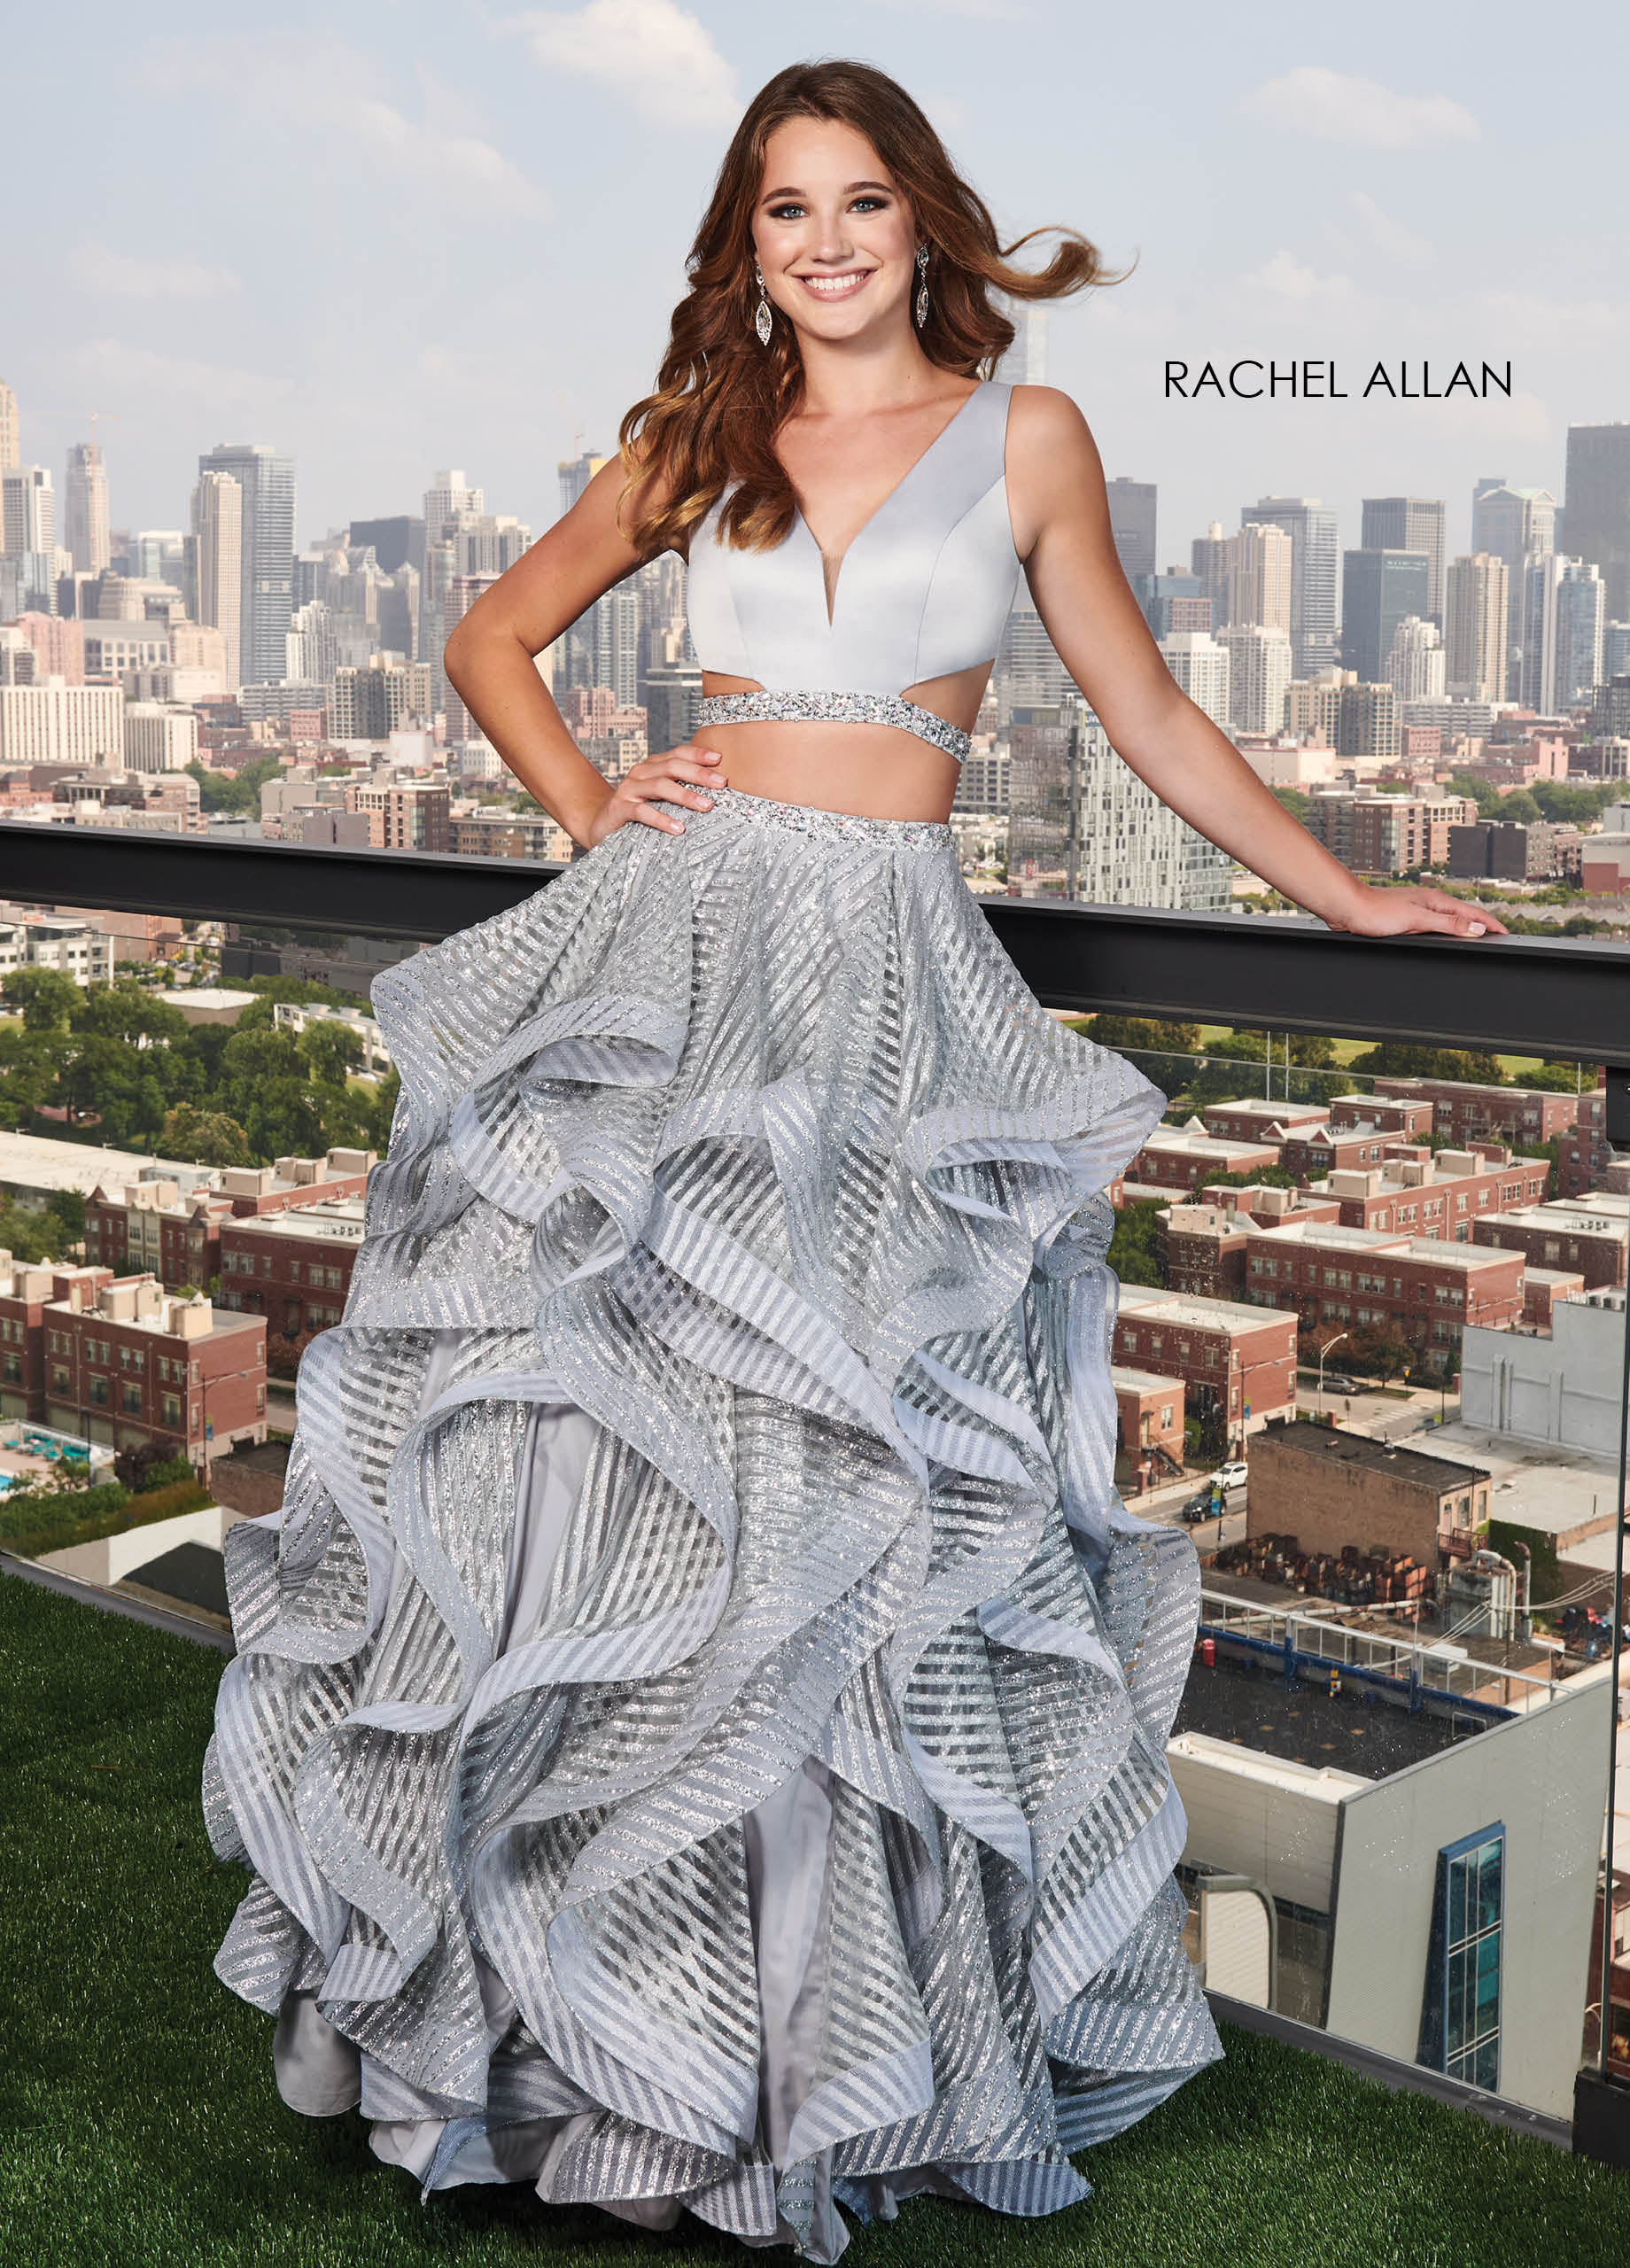 V-Neck Ball Gowns Prom Dresses in Silver/gunmetal Color